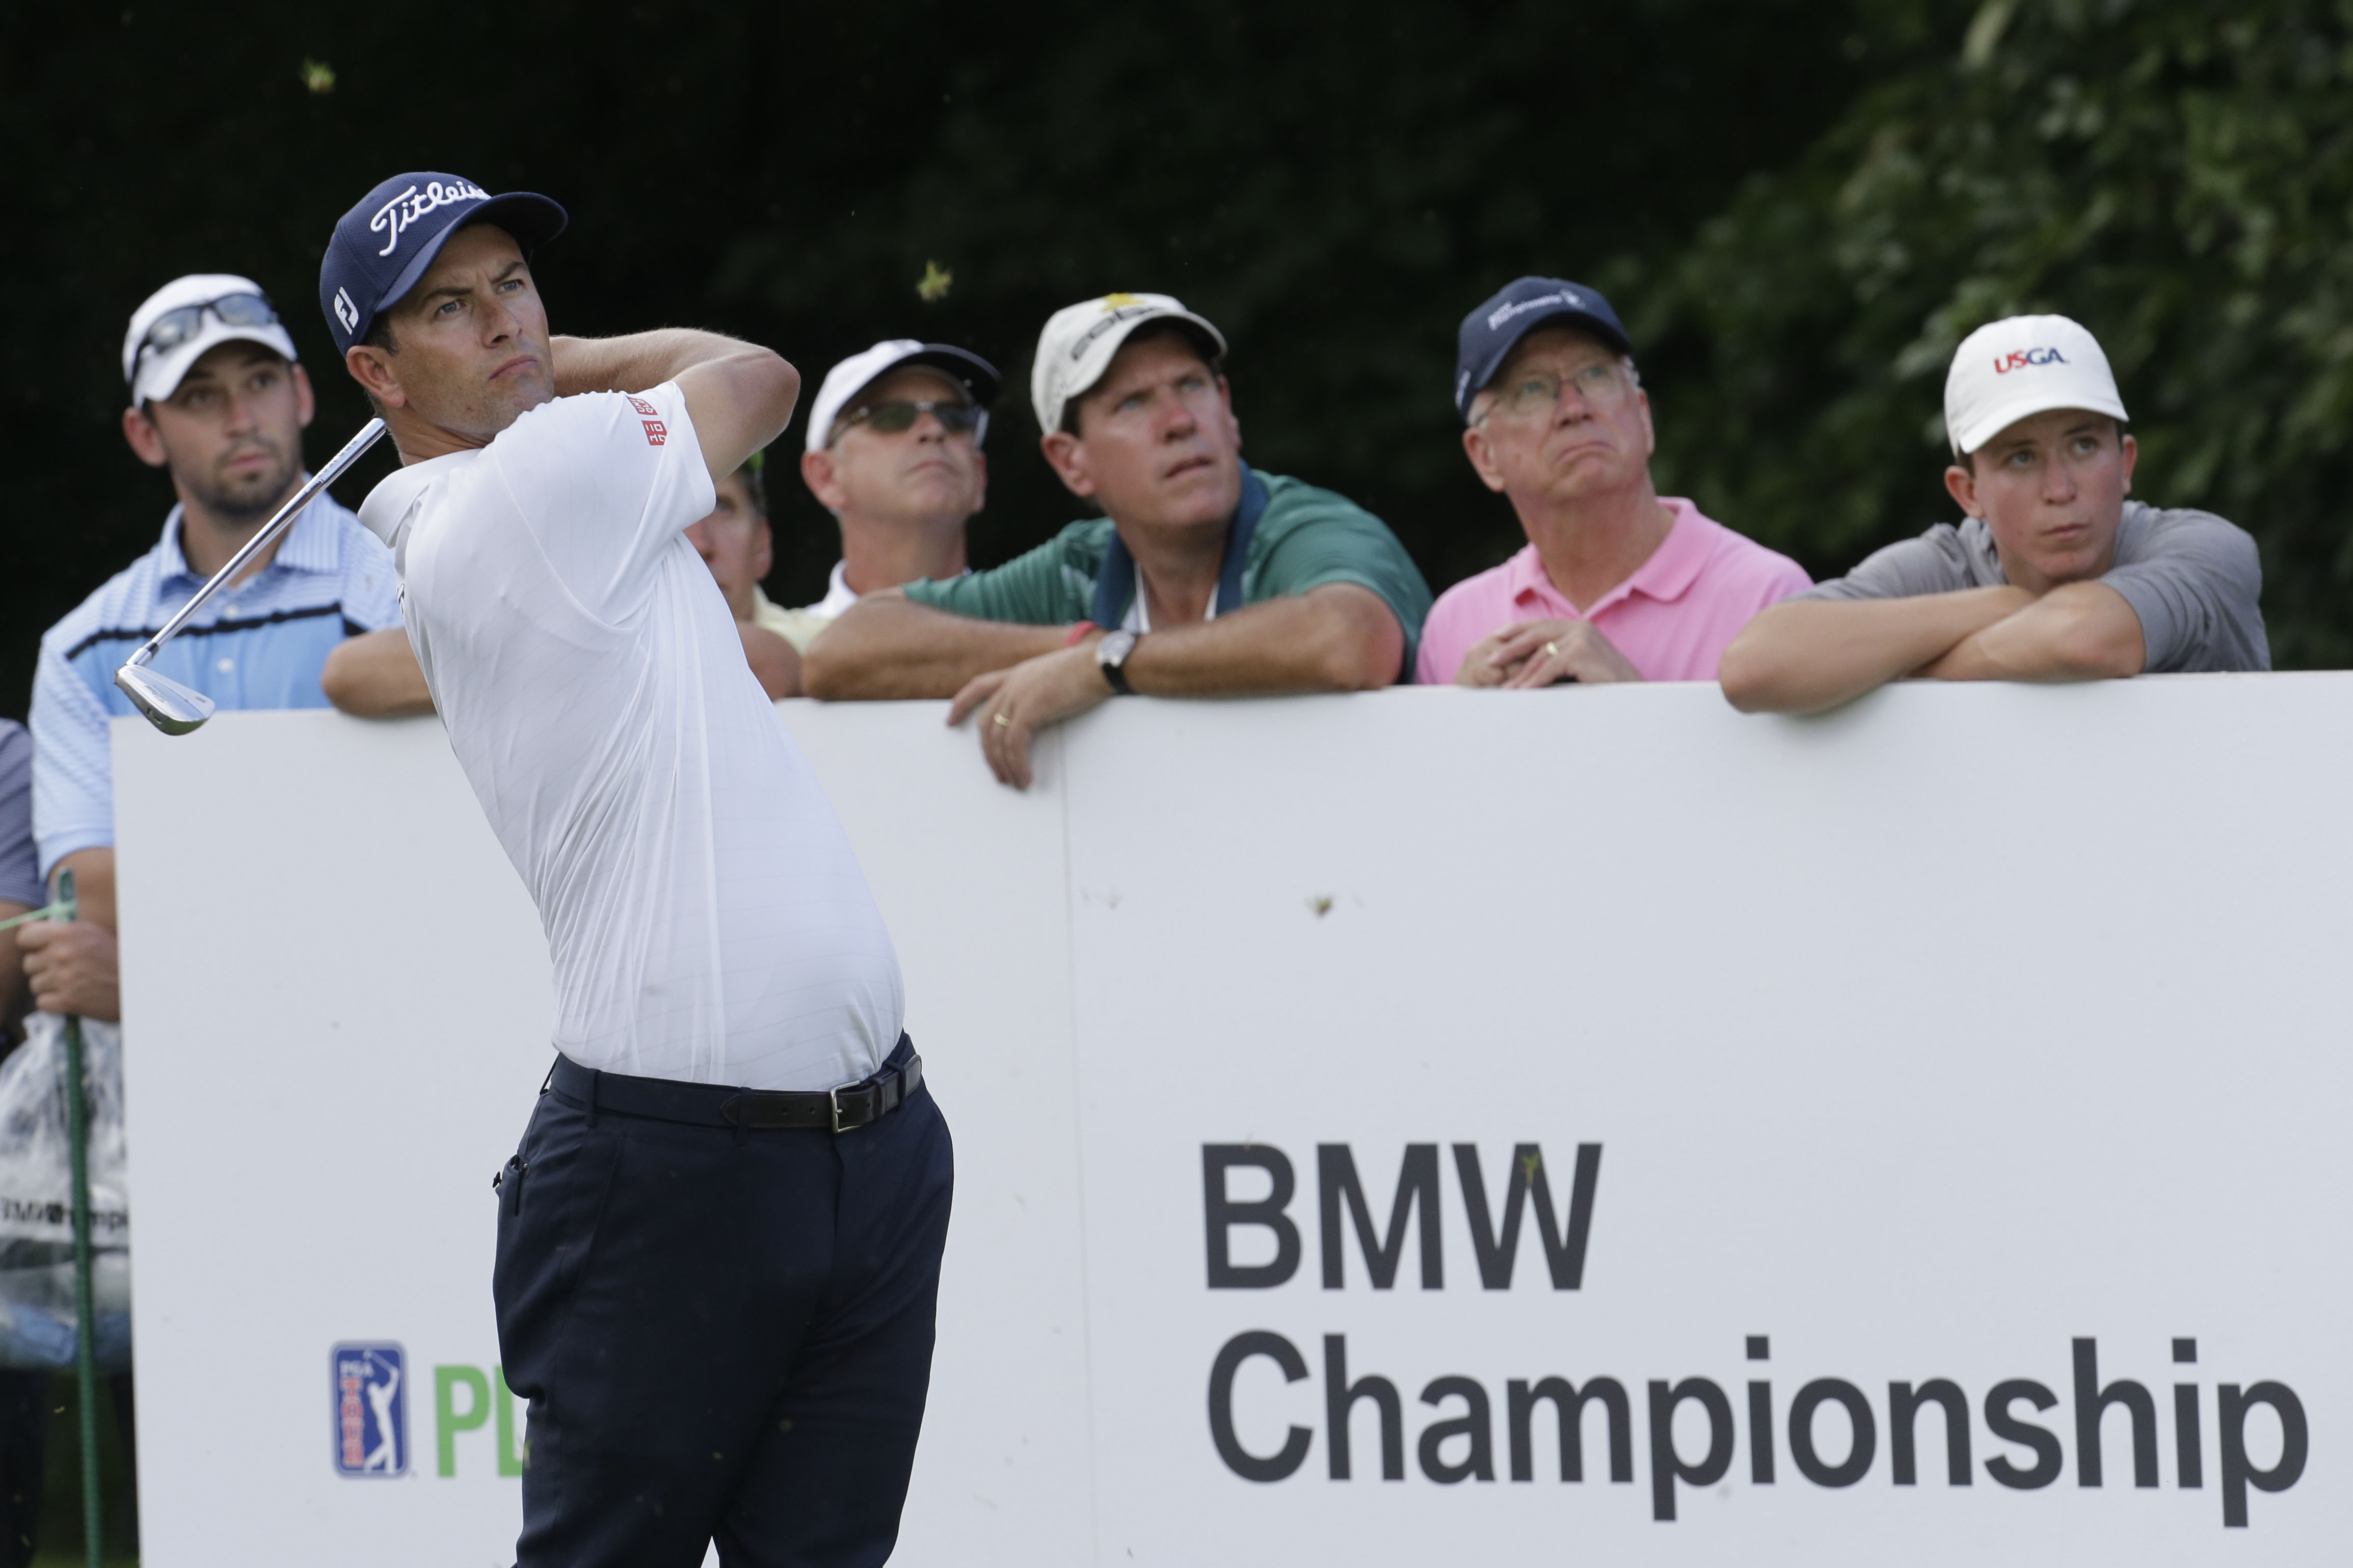 Adam Scott, of Australia, watches his shot from the sixth tee during the first round of the BMW Championship golf tournament at Crooked Stick Golf Club in Carmel, Ind., Thursday, Sept. 8, 2016. (AP Photo/AJ Mast)